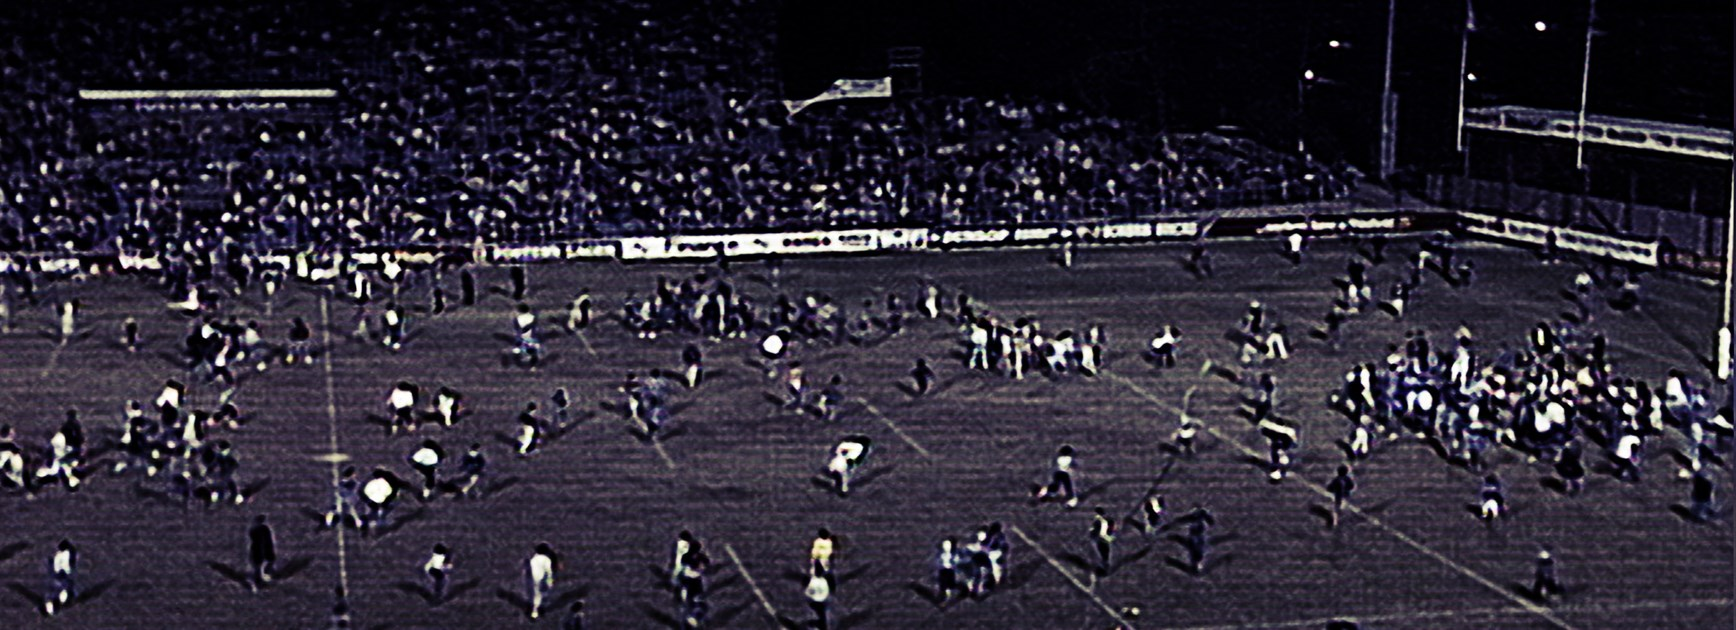 I was there: The Battle of Belmore